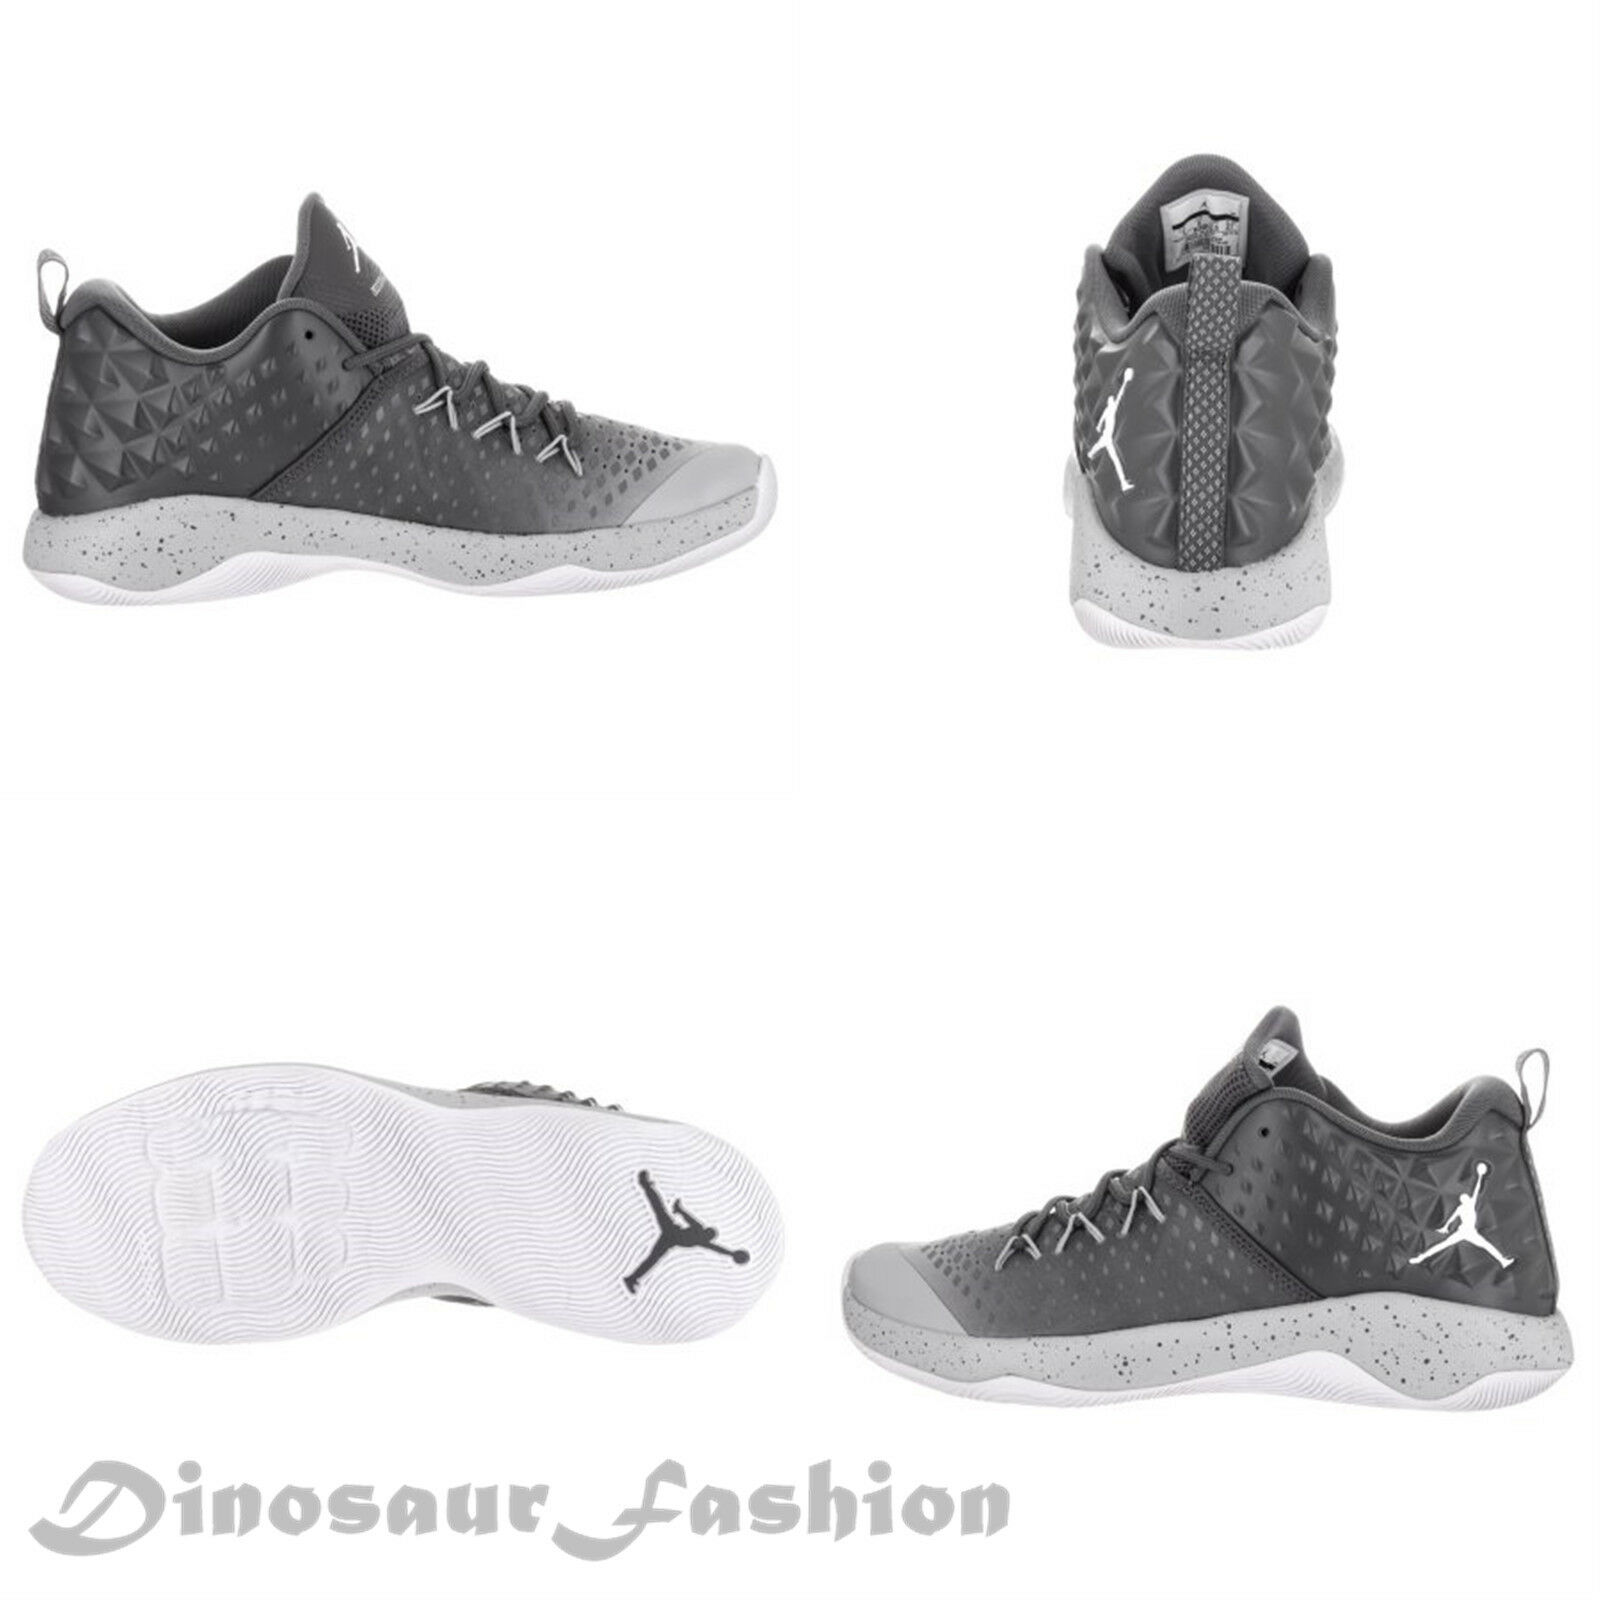 JORDAN EXTRA FLY (854551-003),Men's Sportwears Basketball Shoes,New with Box